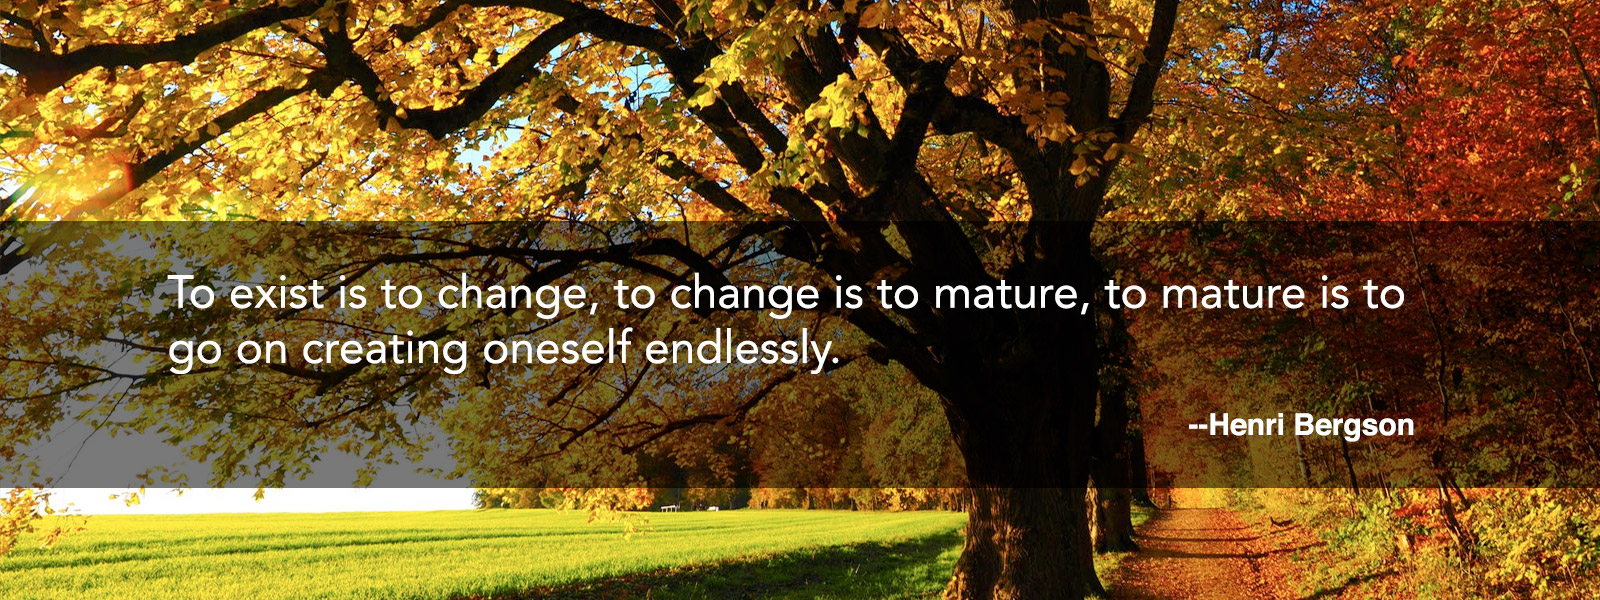 change is to mature